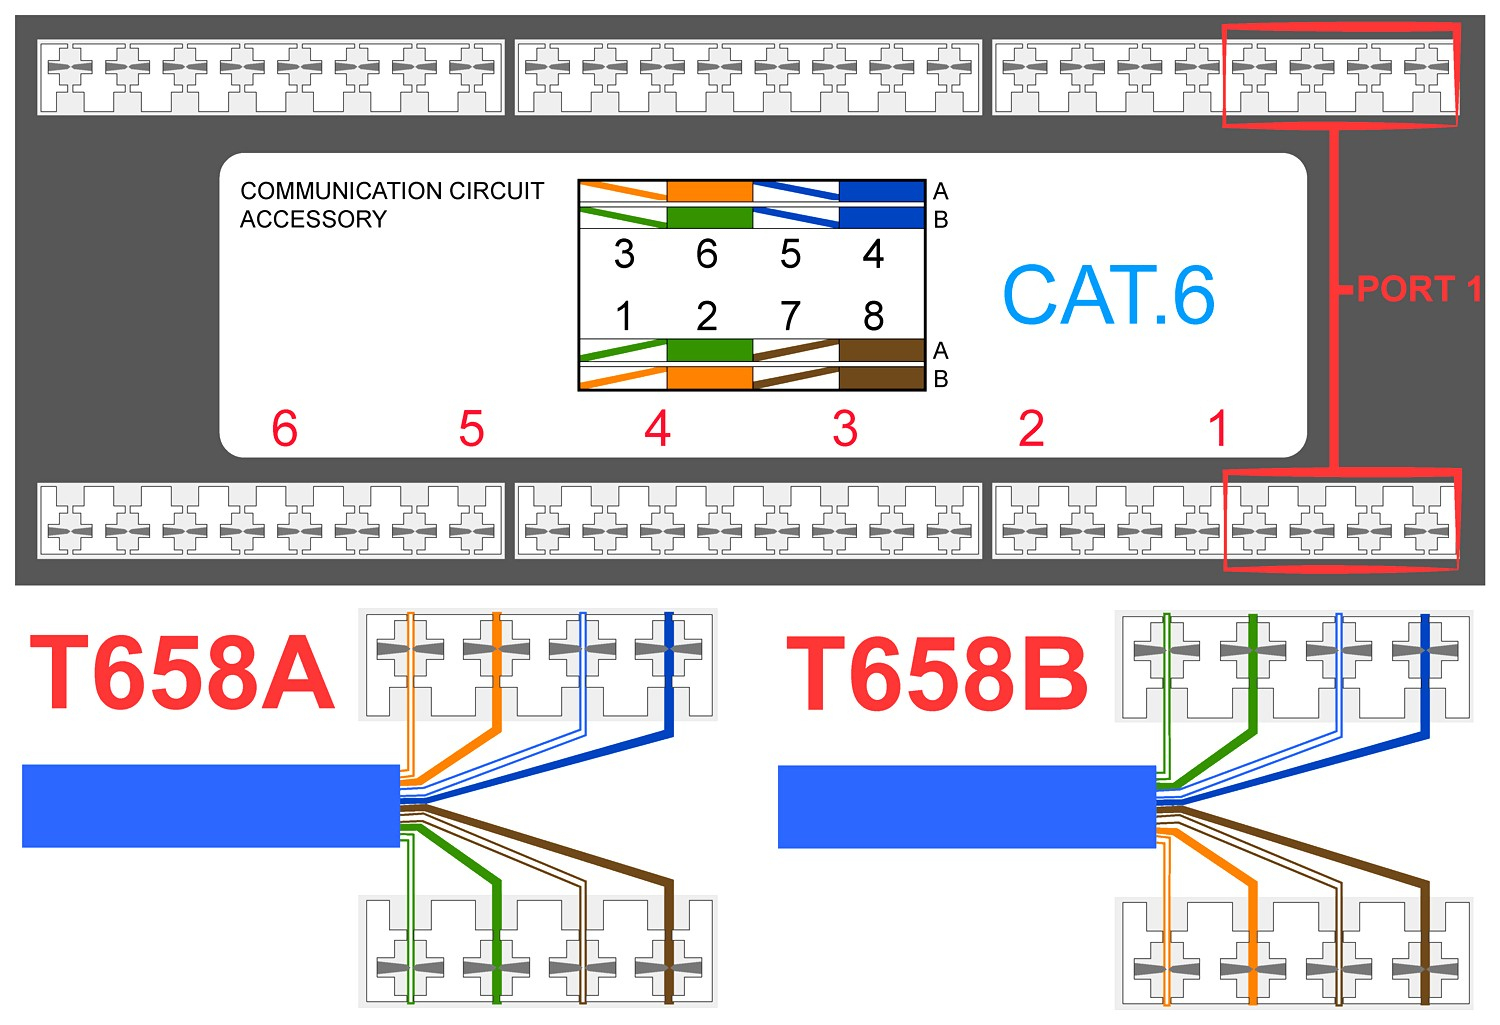 Patch Panel Wiring Diagram | Electrick Wiring Diagram @co - Patch Panel Wiring Diagram